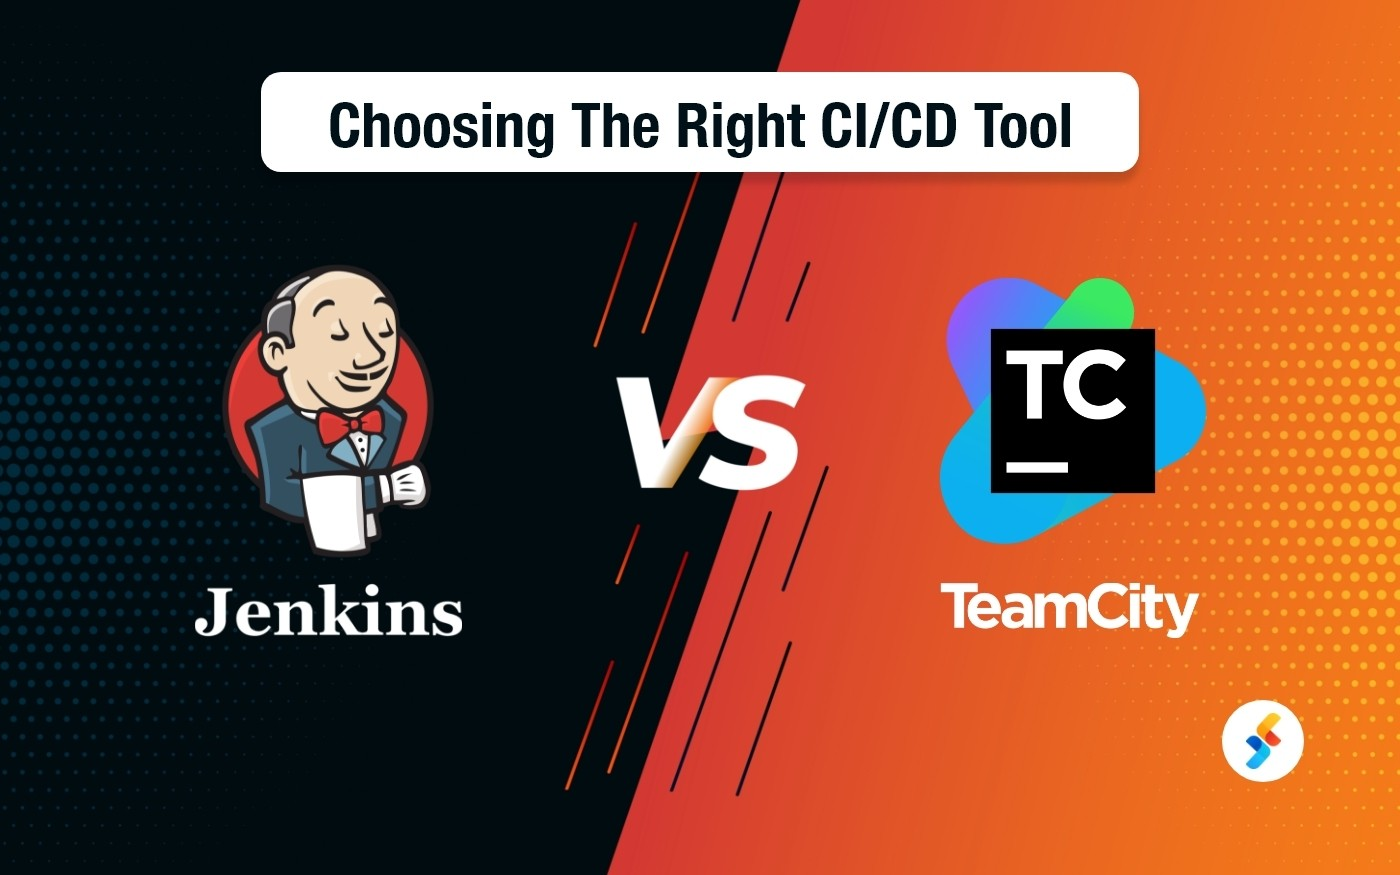 Teamcity vs Jenkins Choosing The Right CI-CD Tool